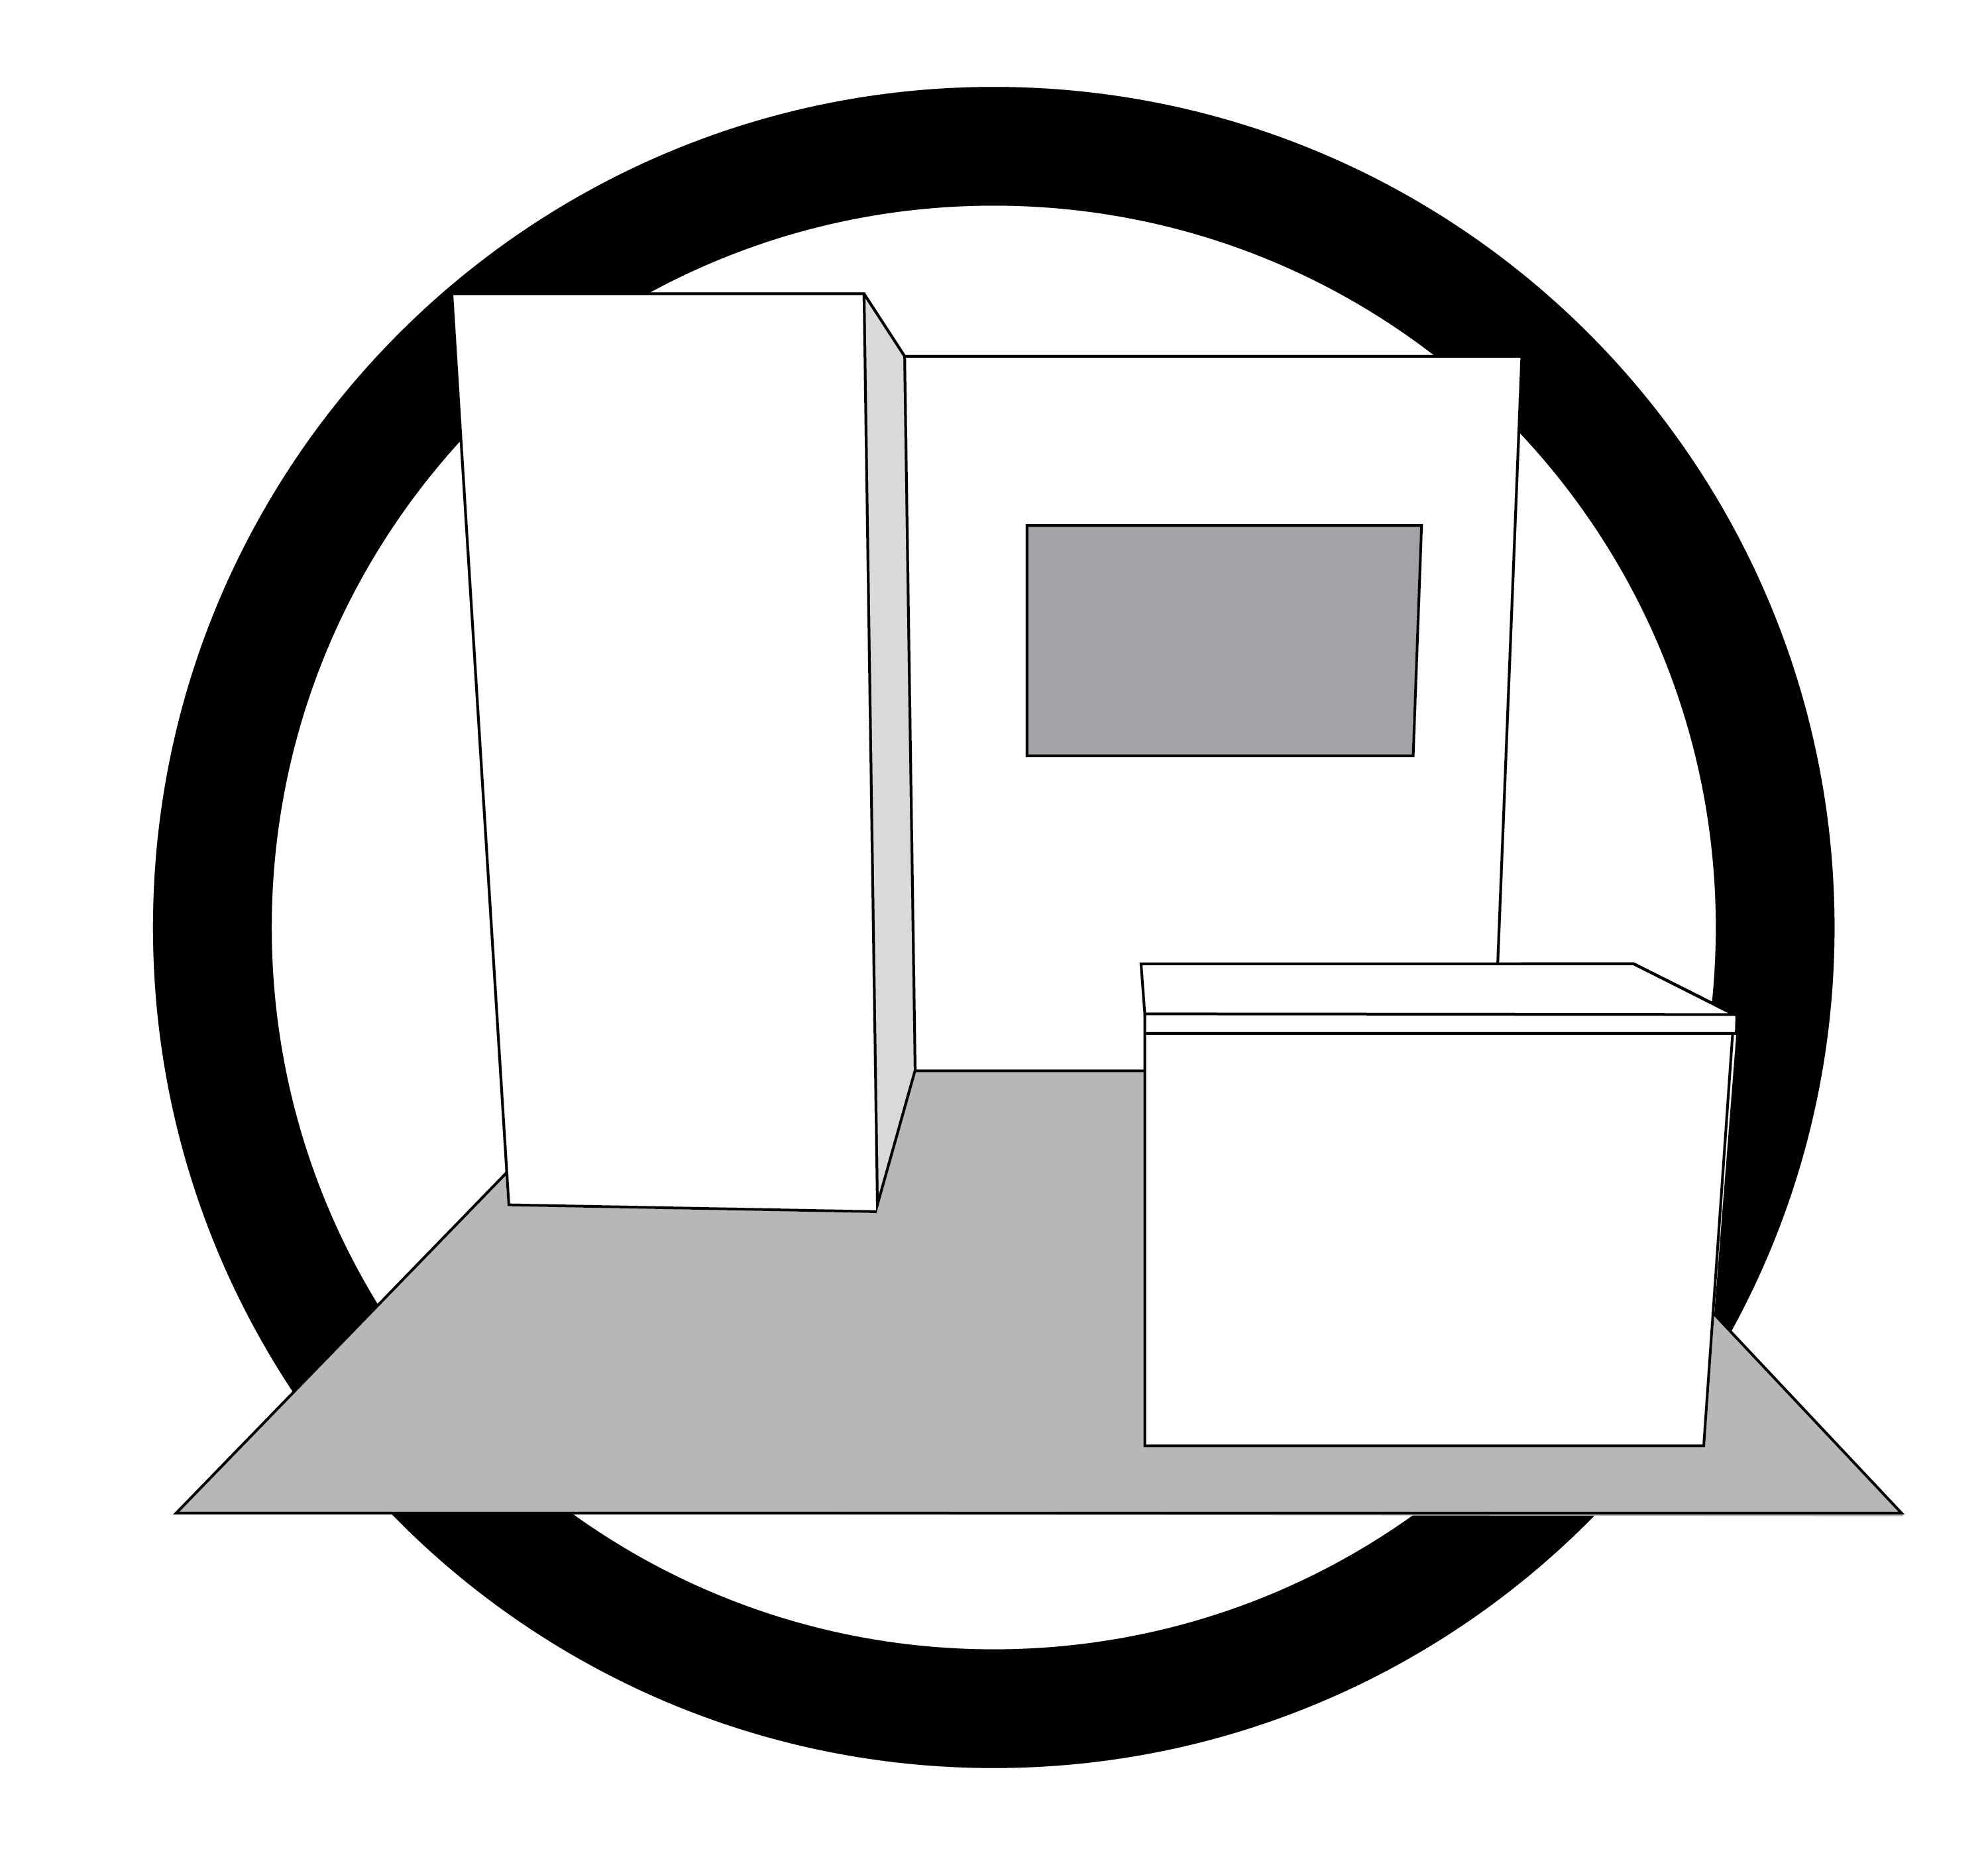 Rentals-rotating-icon-1.1-png